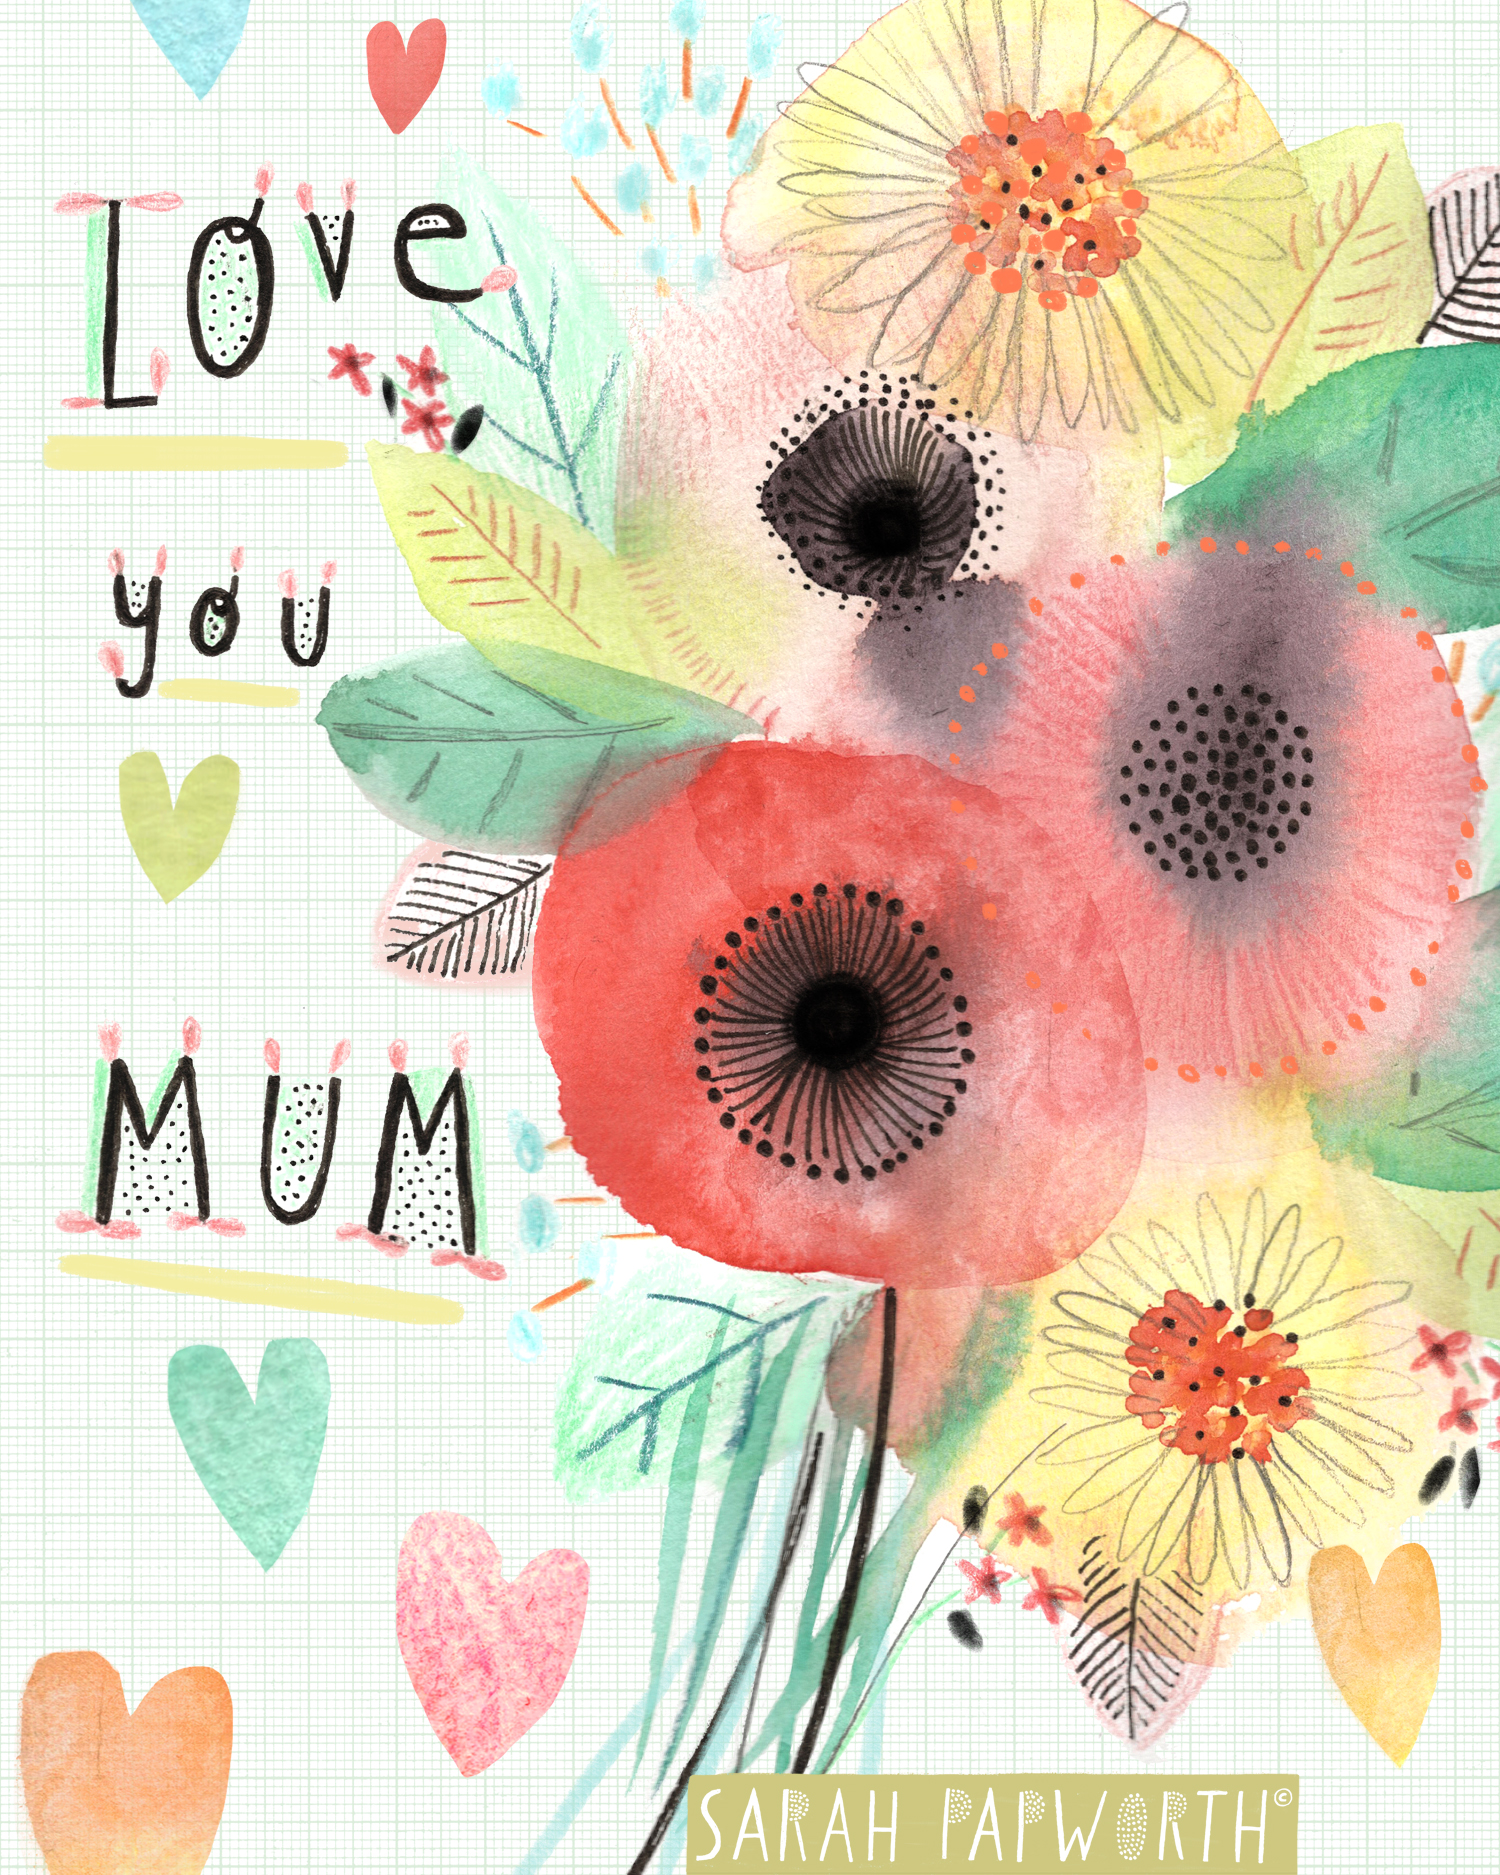 mothers day greeting card floral hearts design sarah papworth illustrator.jpg